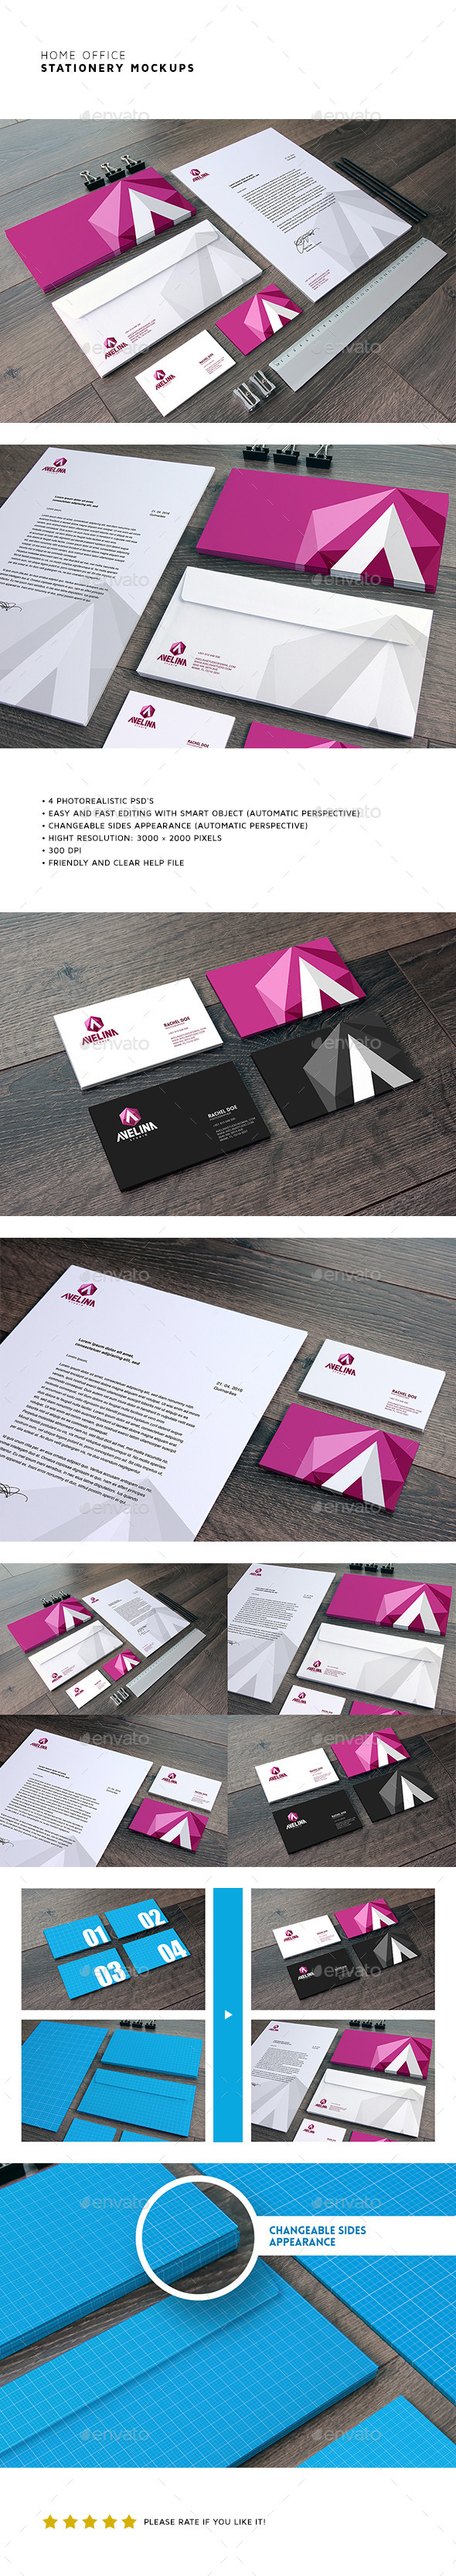 Corporate Stationery Mock-Up (Stationery)